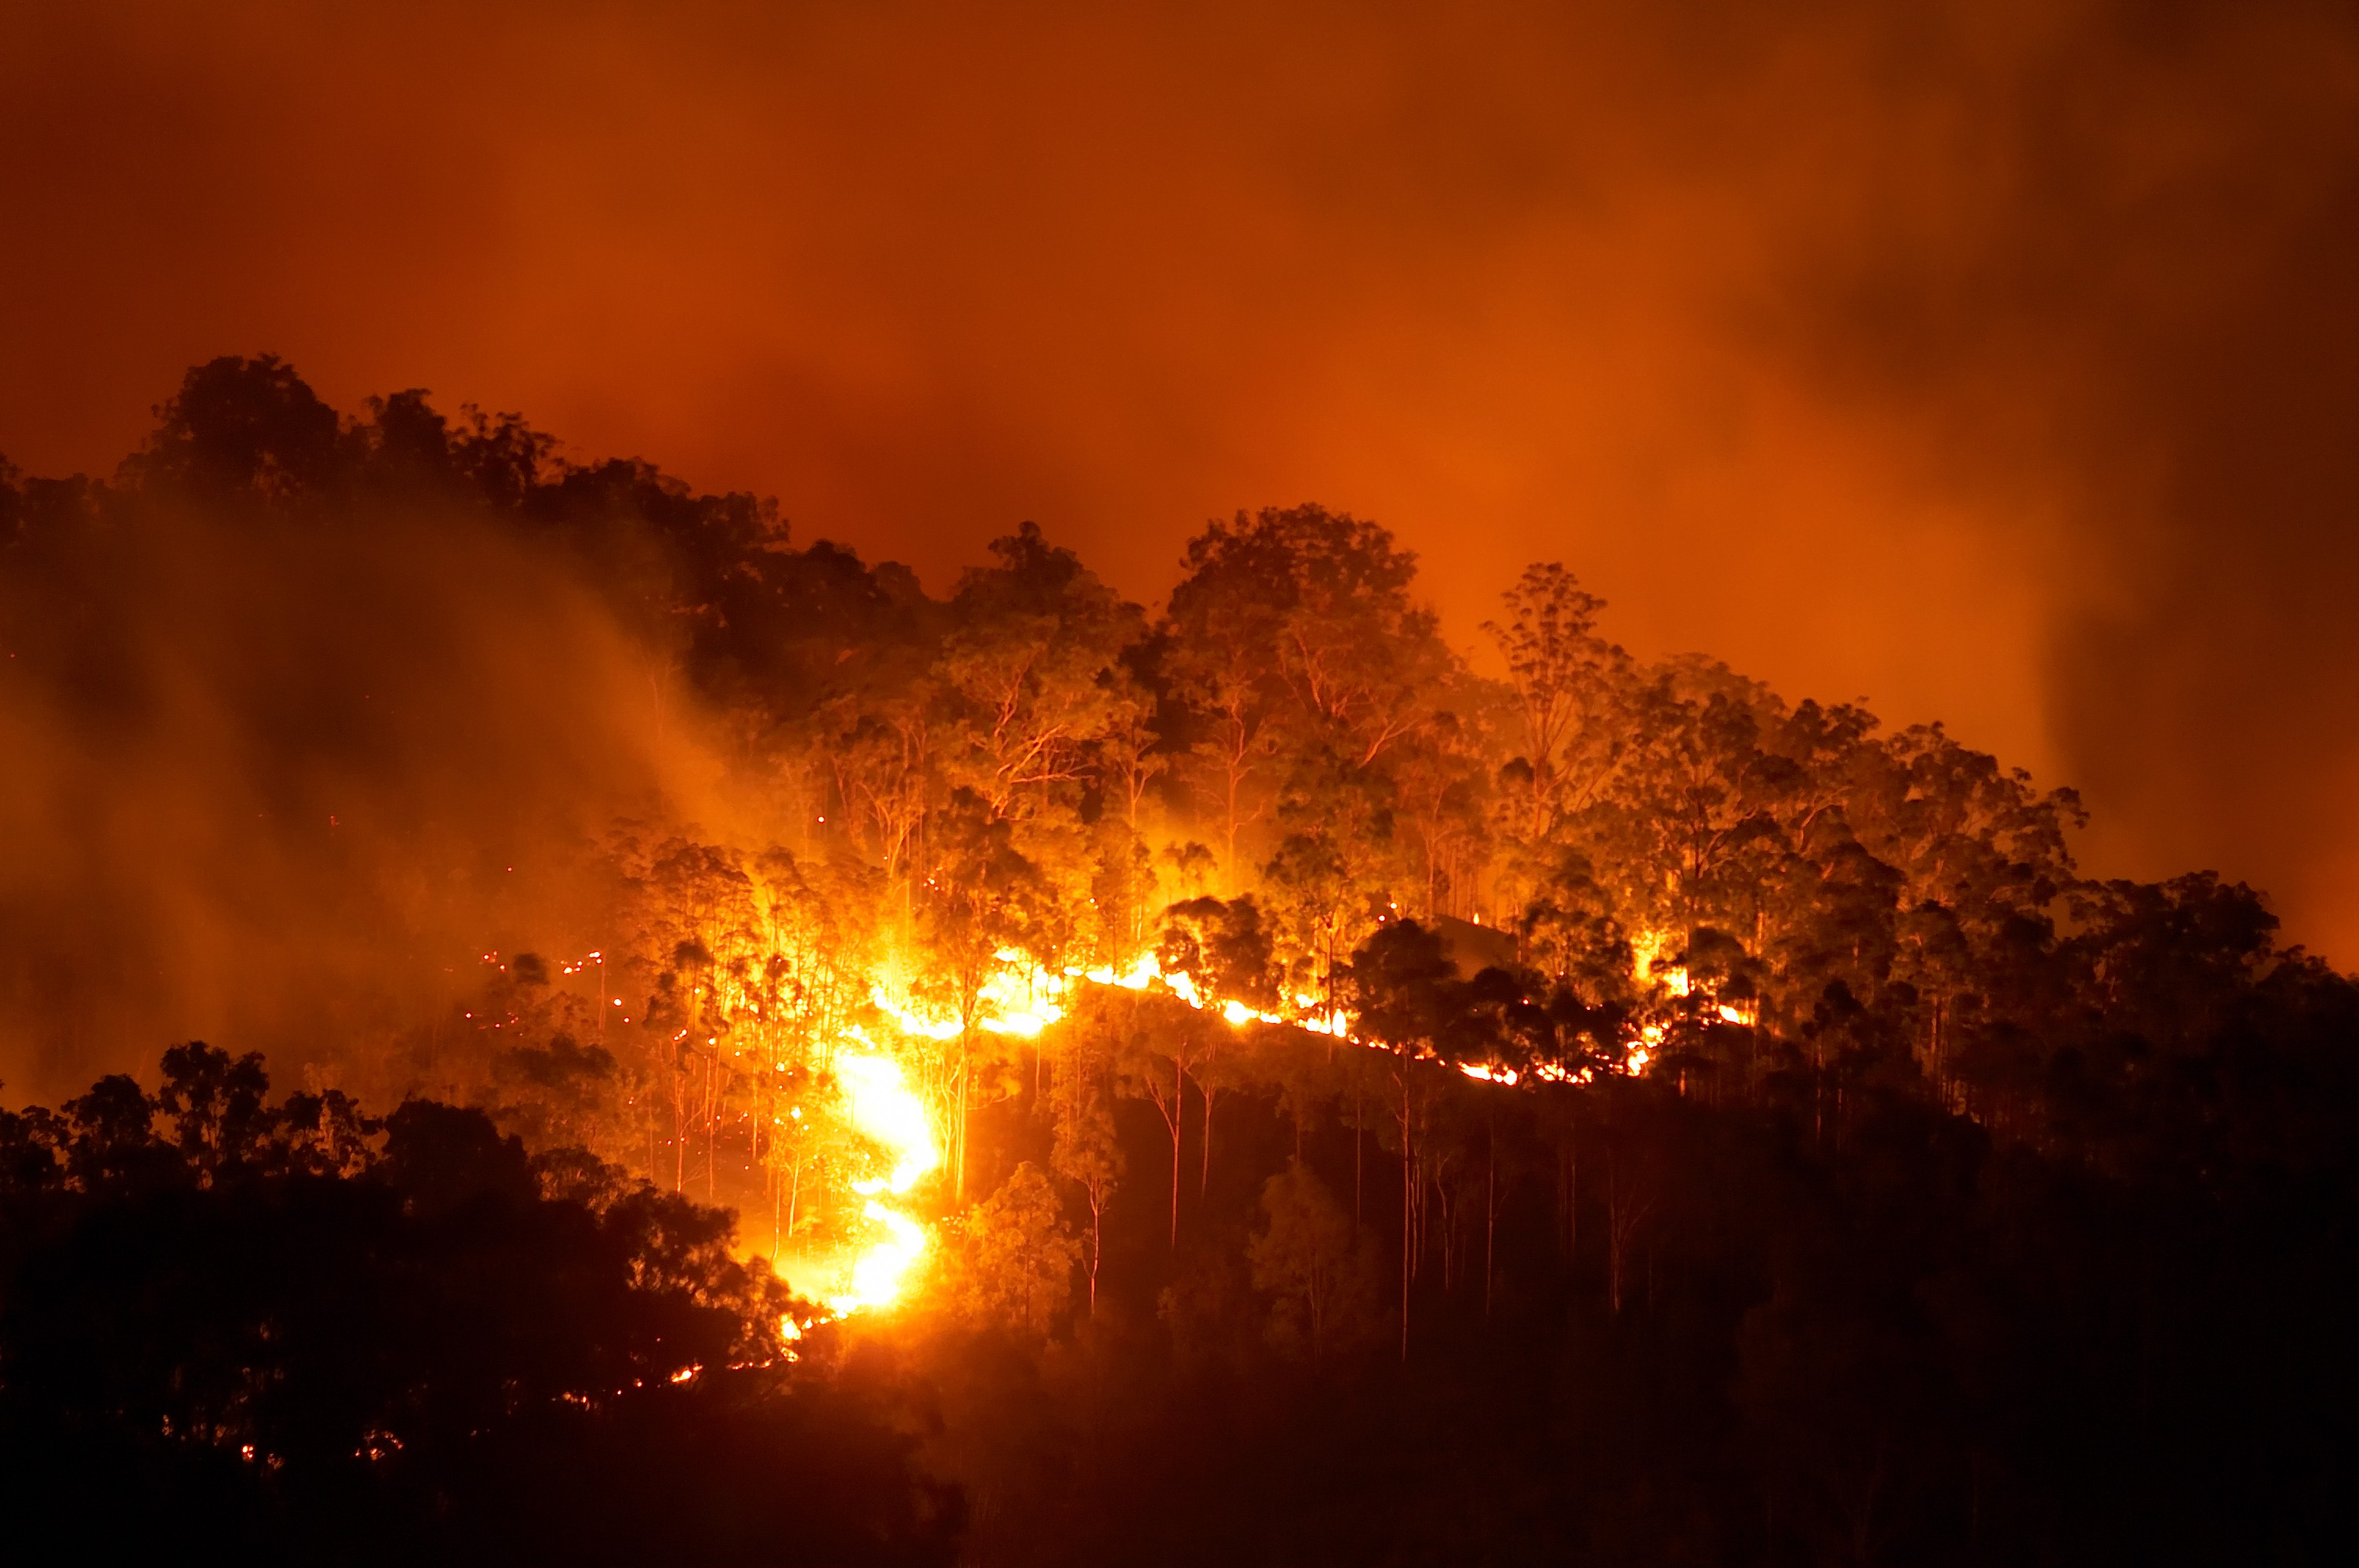 Wildfire blaze in a forest